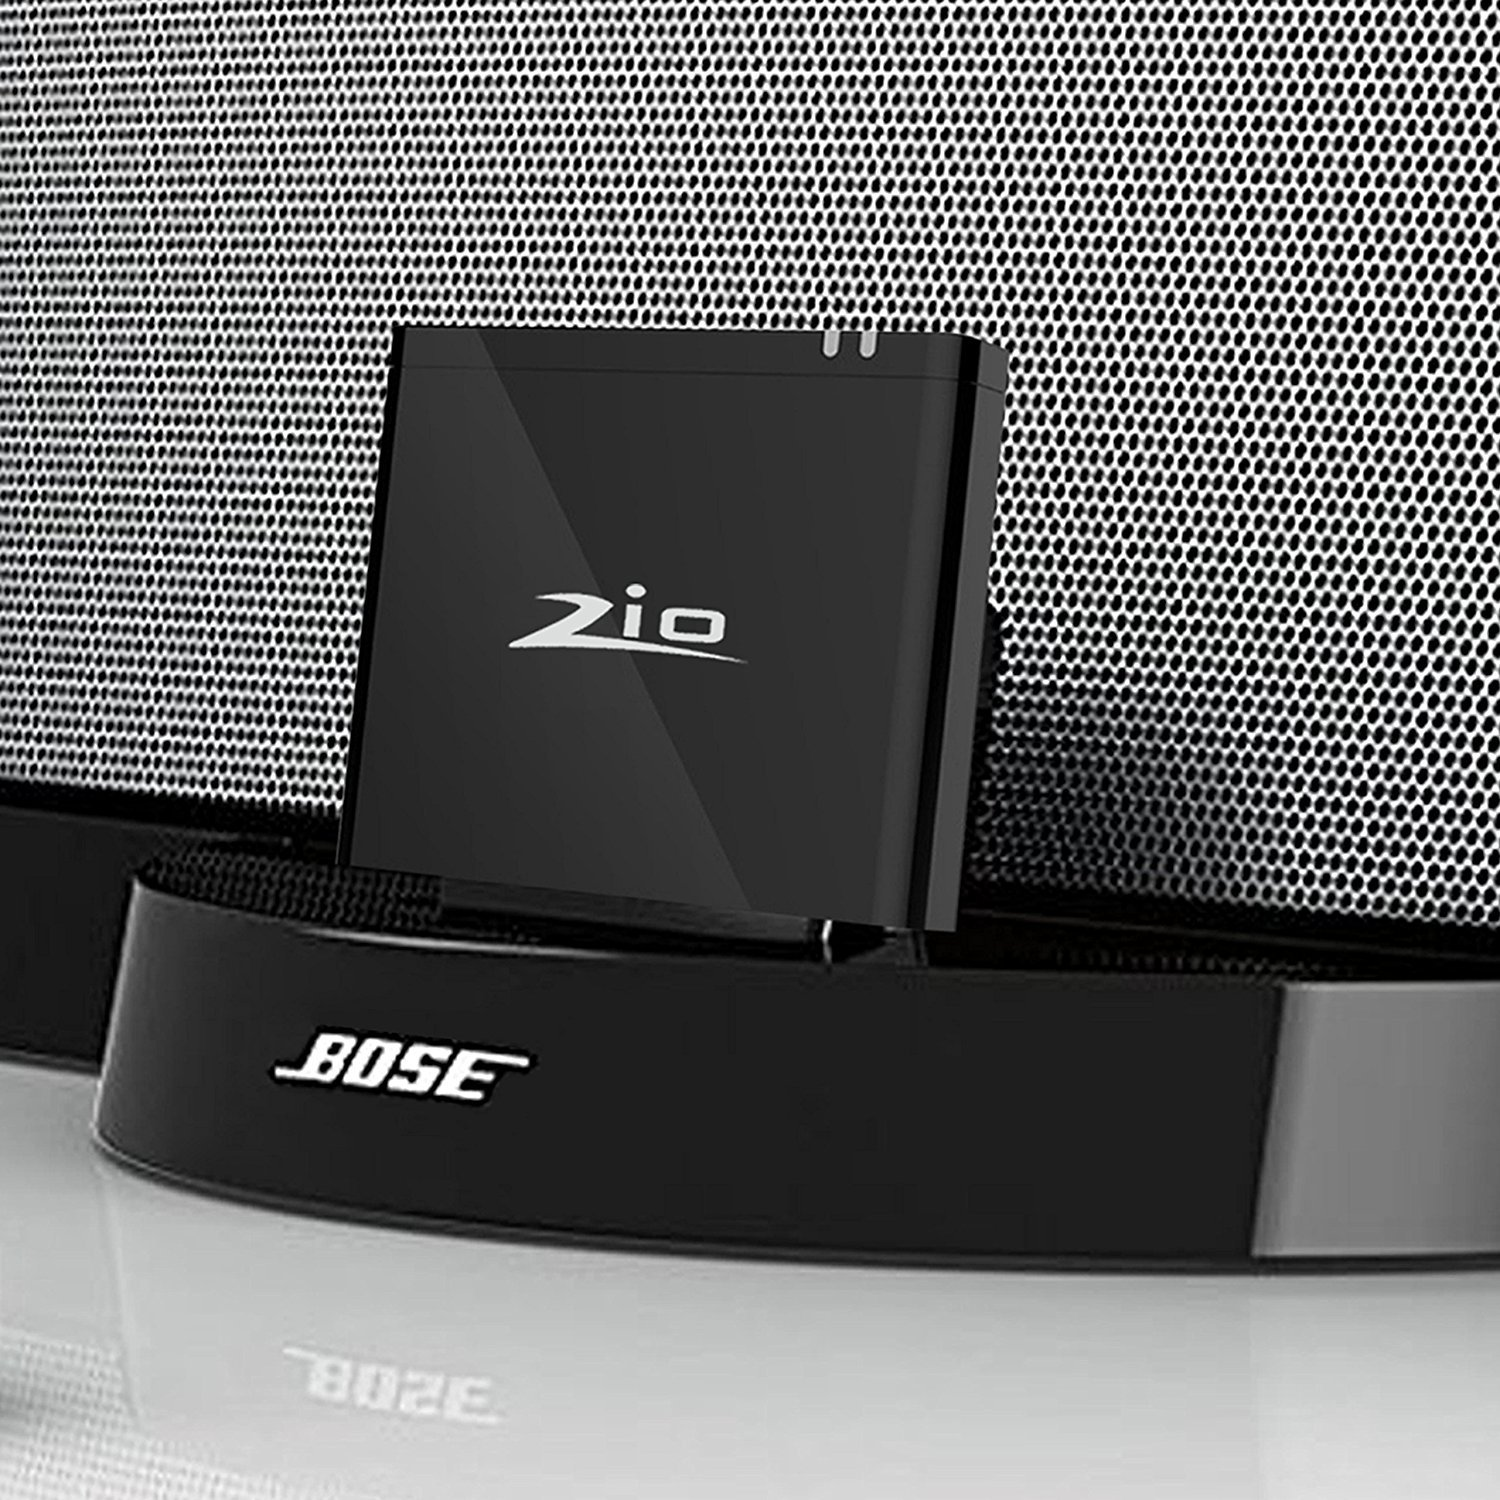 ZIOCOM Bluetooth Audio Adapter Music Receiver with 8 pin Lightning Dock for Bose Sounddock III/XT, JBL MS302GM,Philips DS1155B / 93